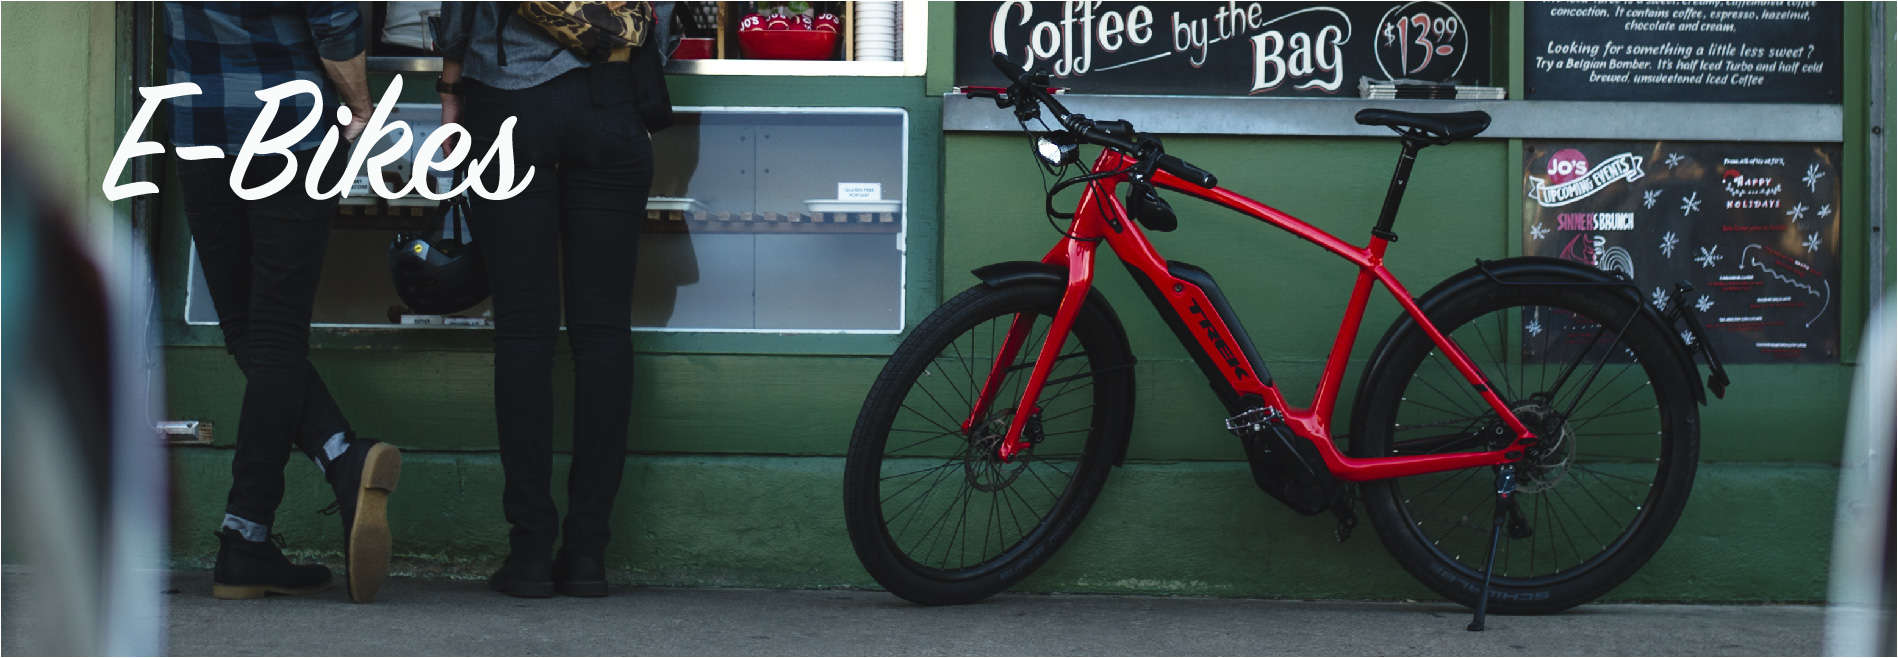 Have more fun on an Electric Bike from Gregg's Cycle.